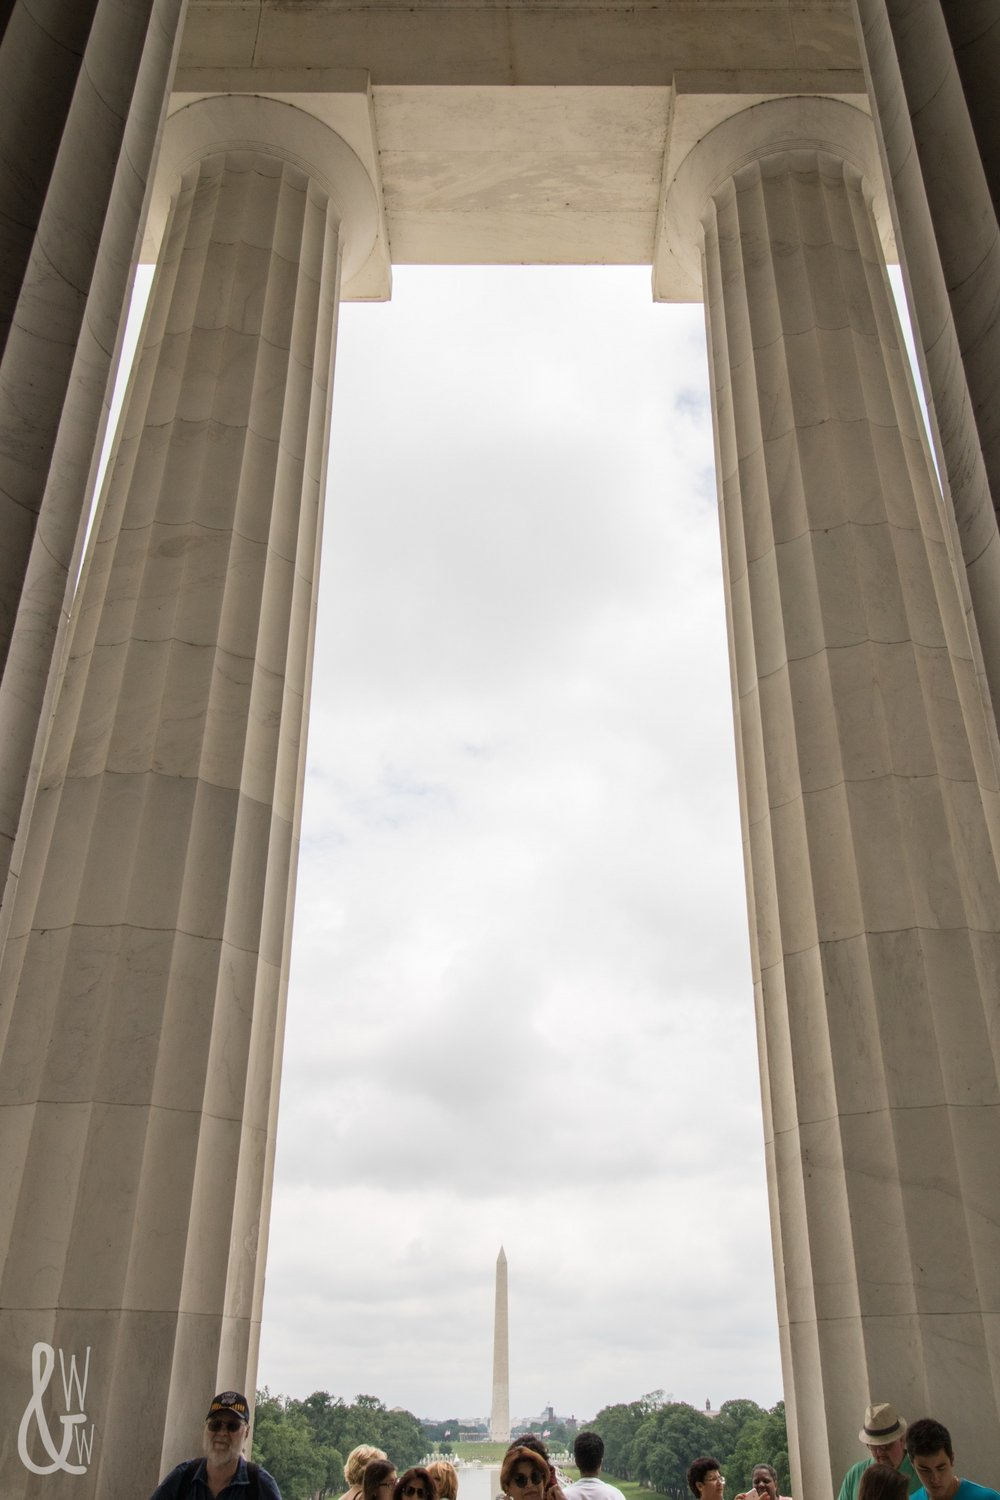 Avoiding the crowds at the Lincoln Memorial